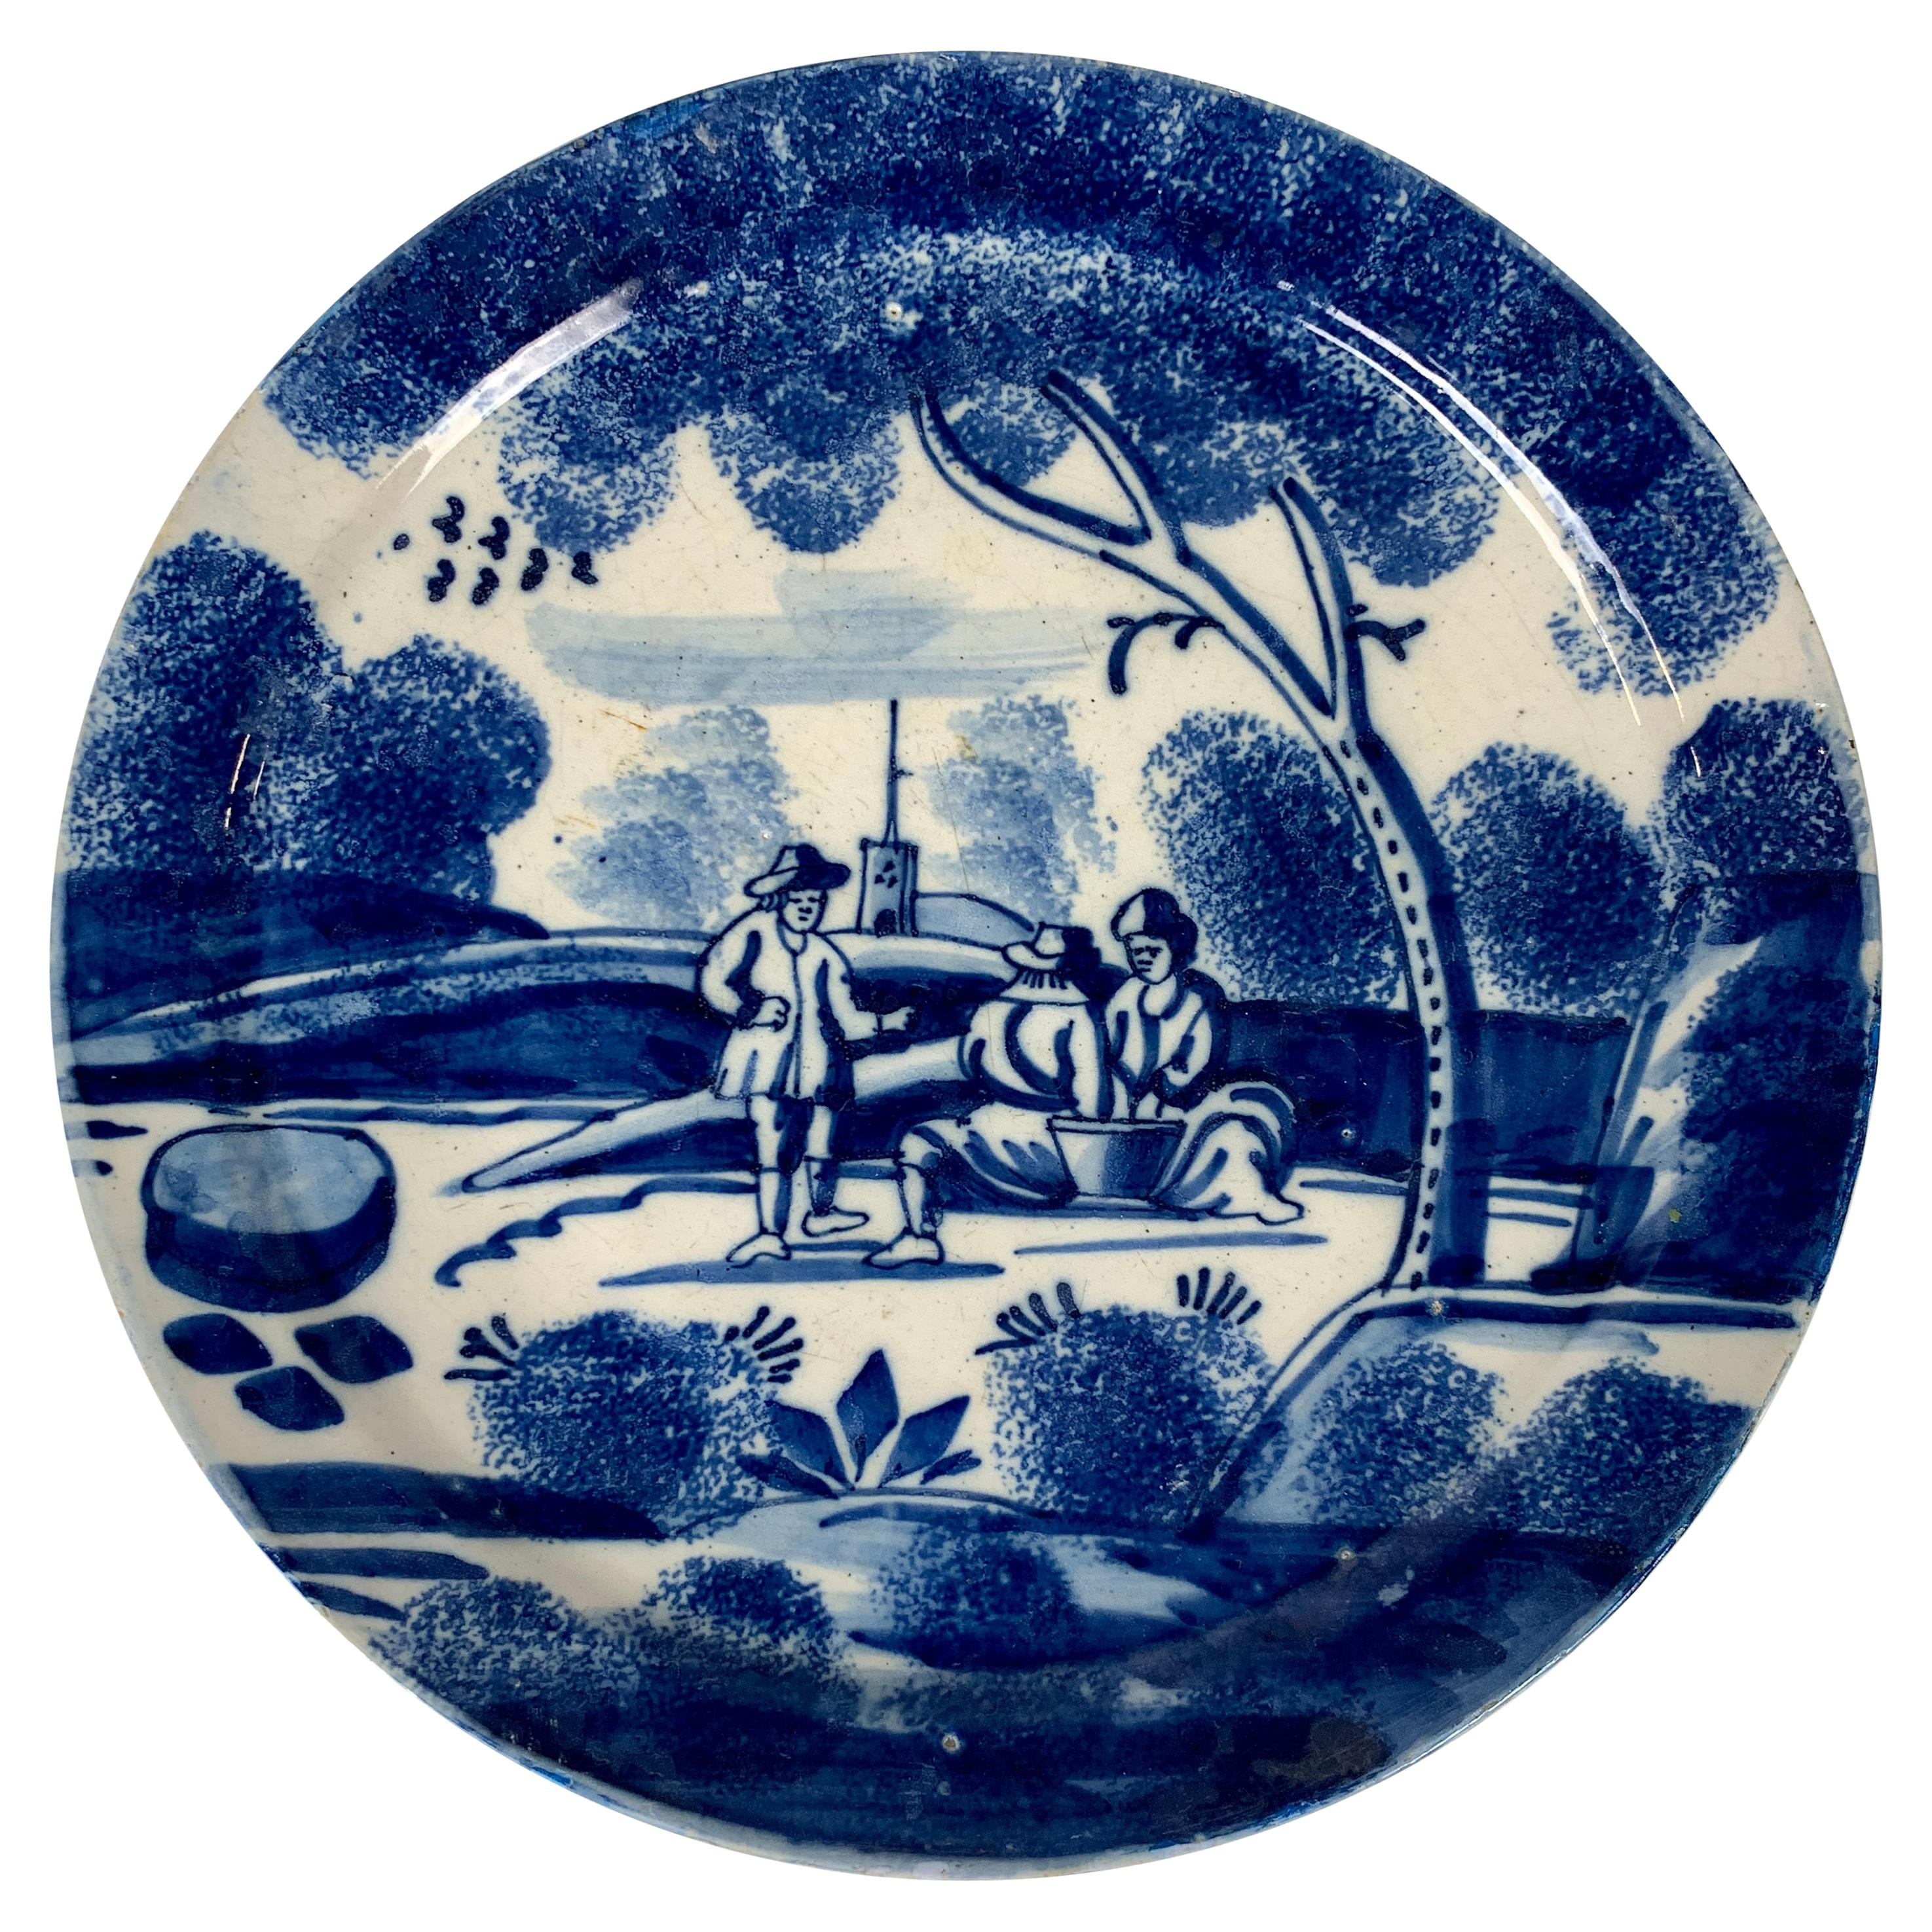 Antique Hand-Painted Blue and White Dutch Delft Dish Made 18th Century c-1730-40